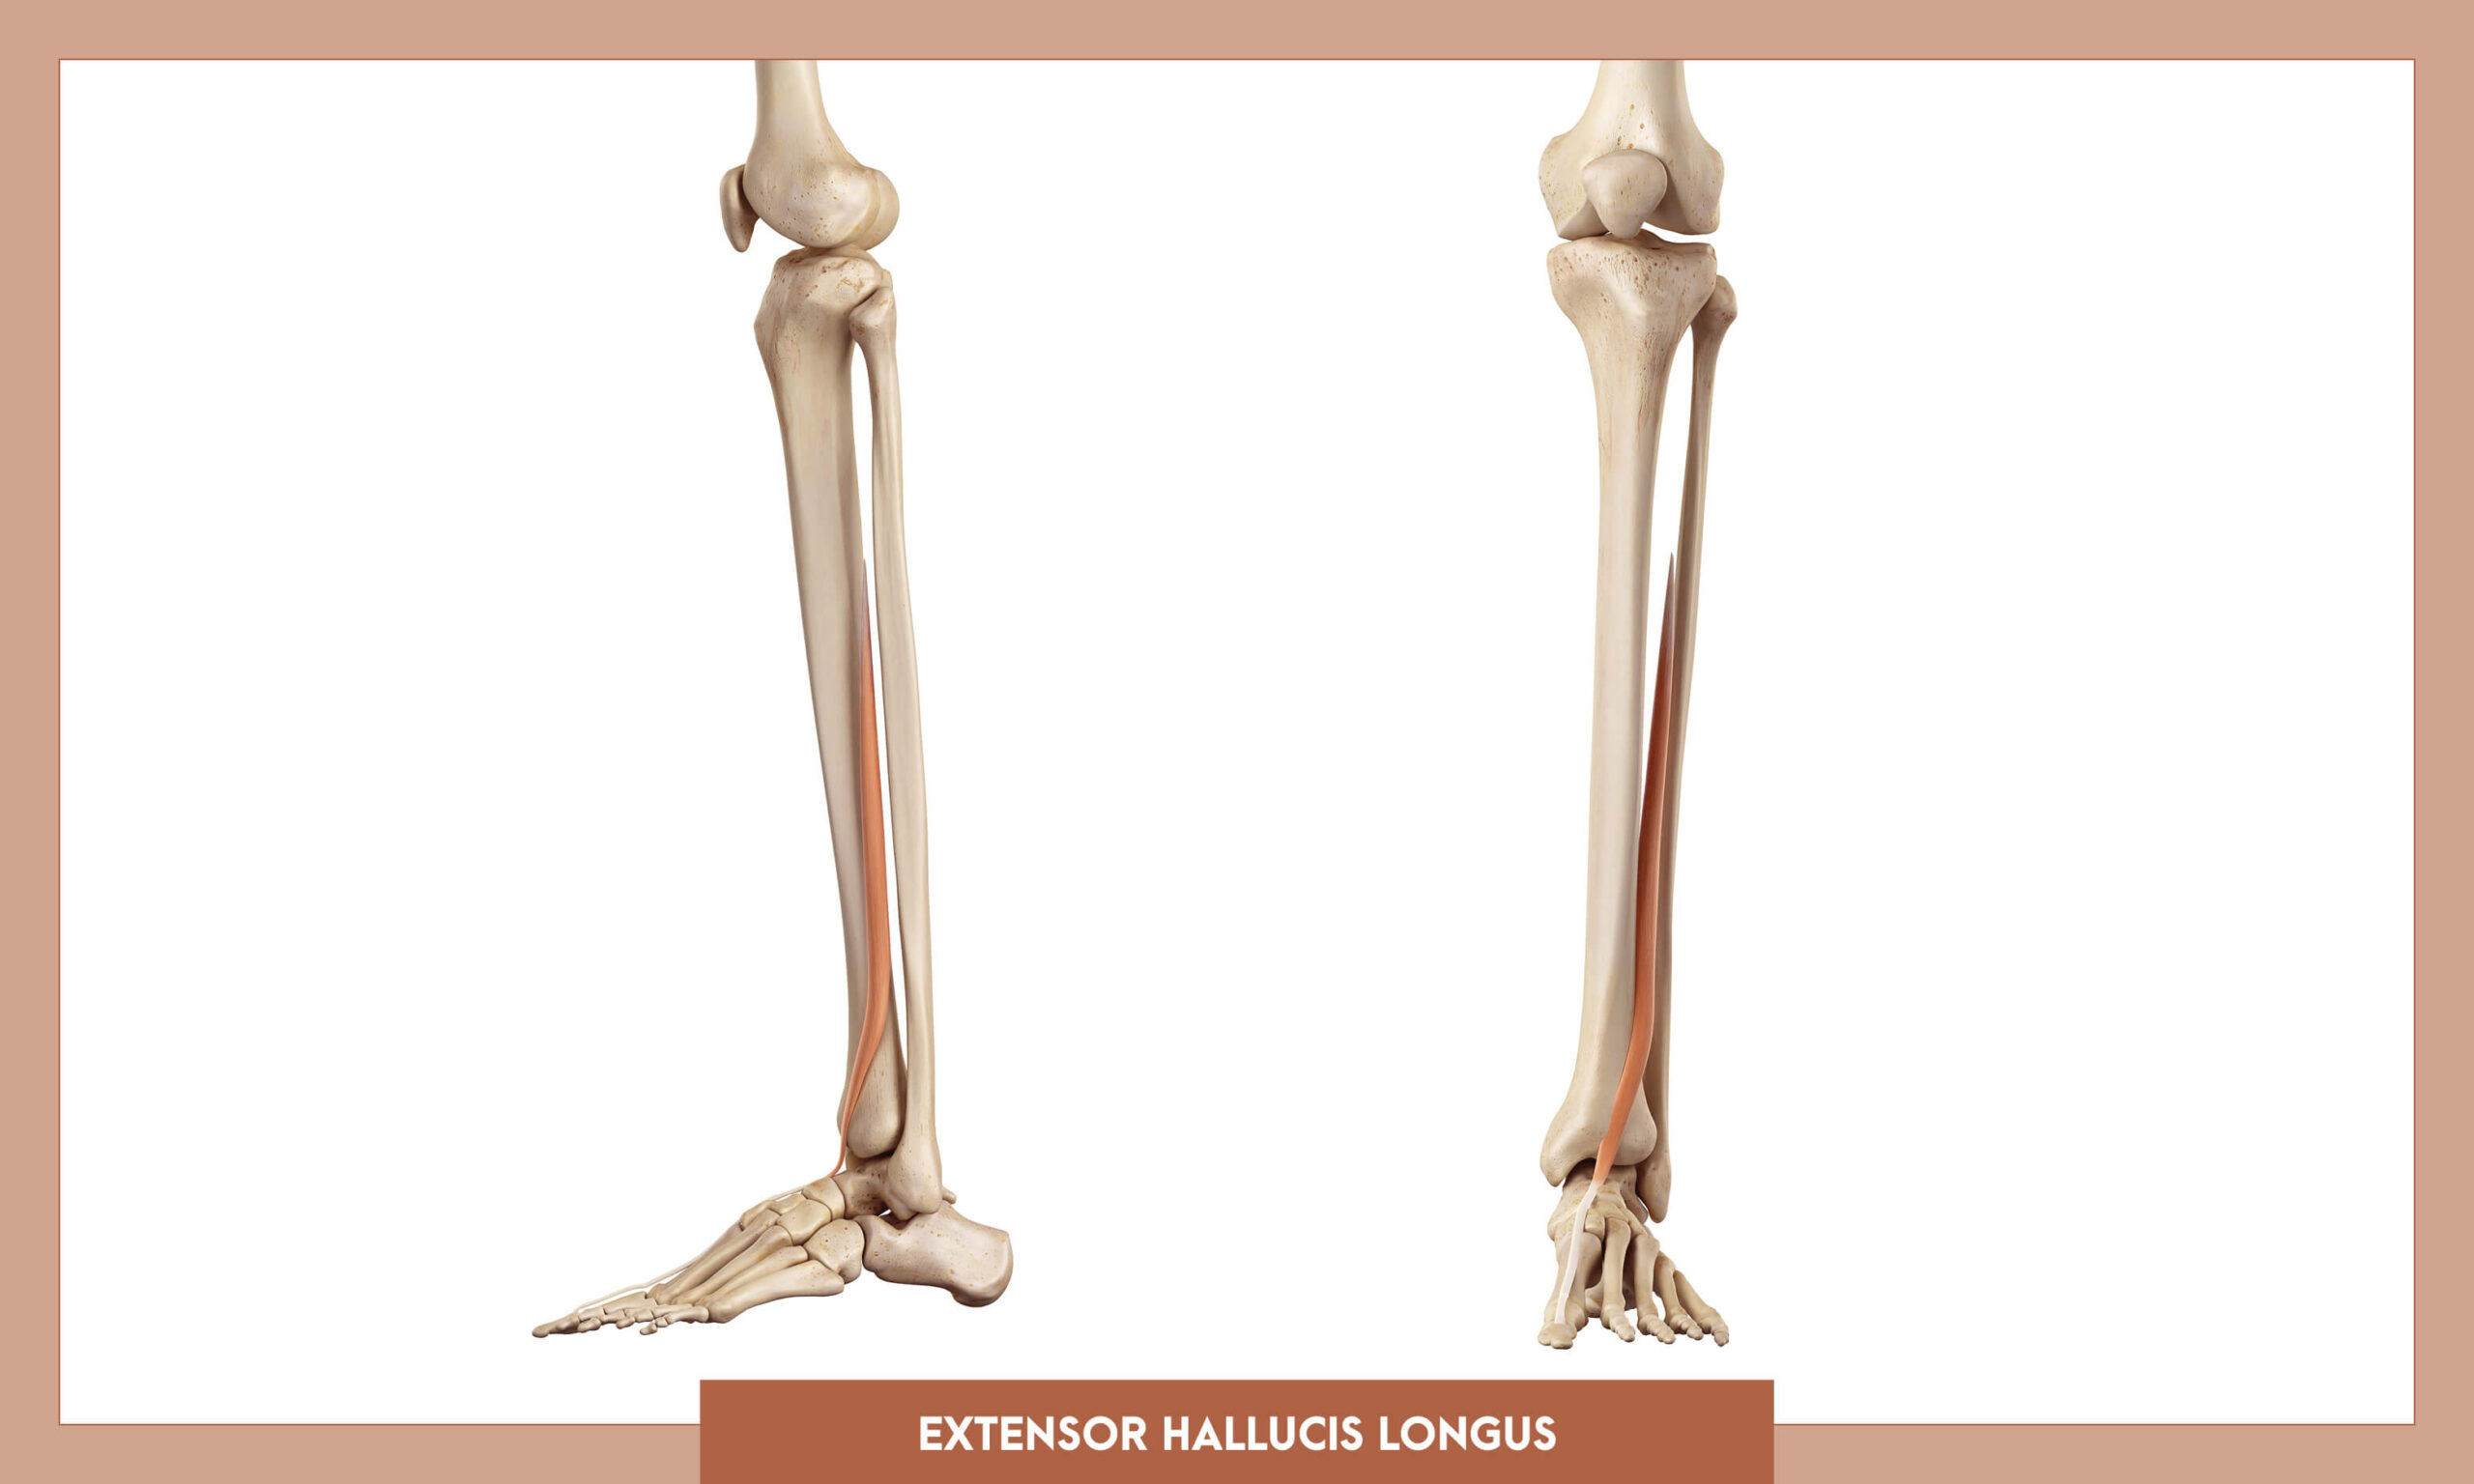 Muscles of thee Lower Limb - Extensor hallucis longus